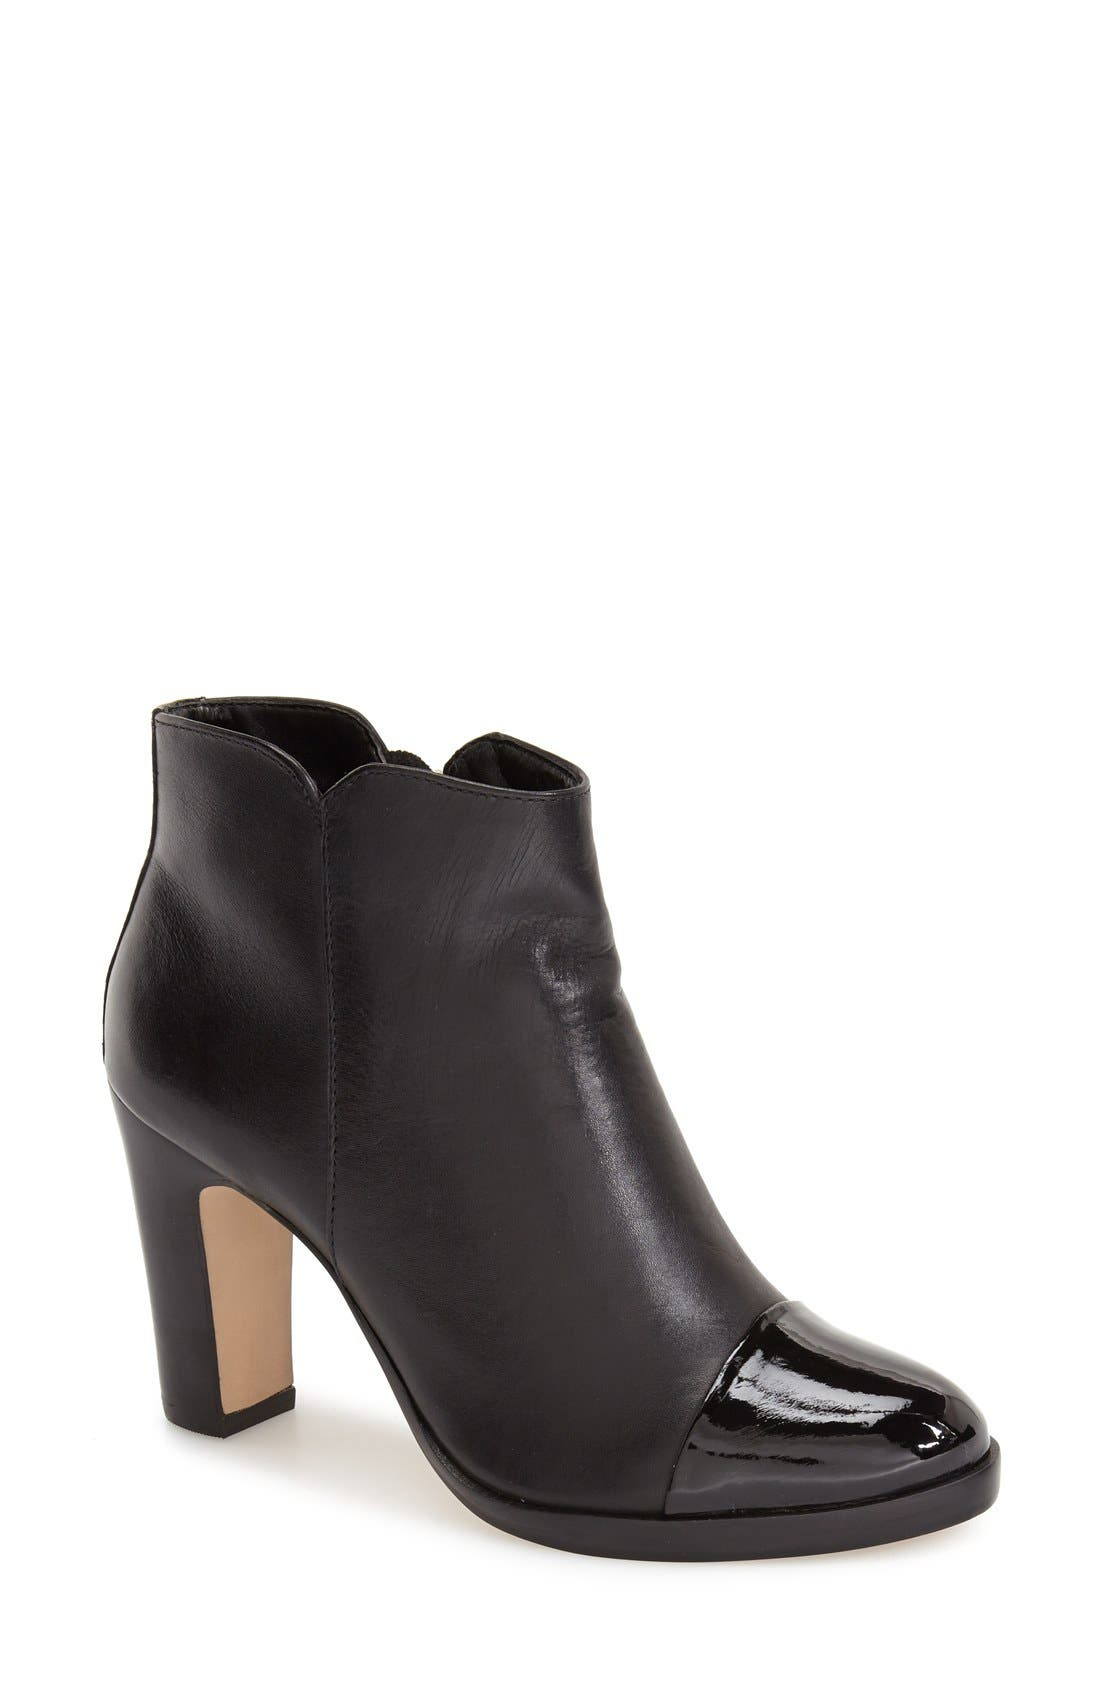 Main Image - Dune London 'Olly' Bootie (Women)